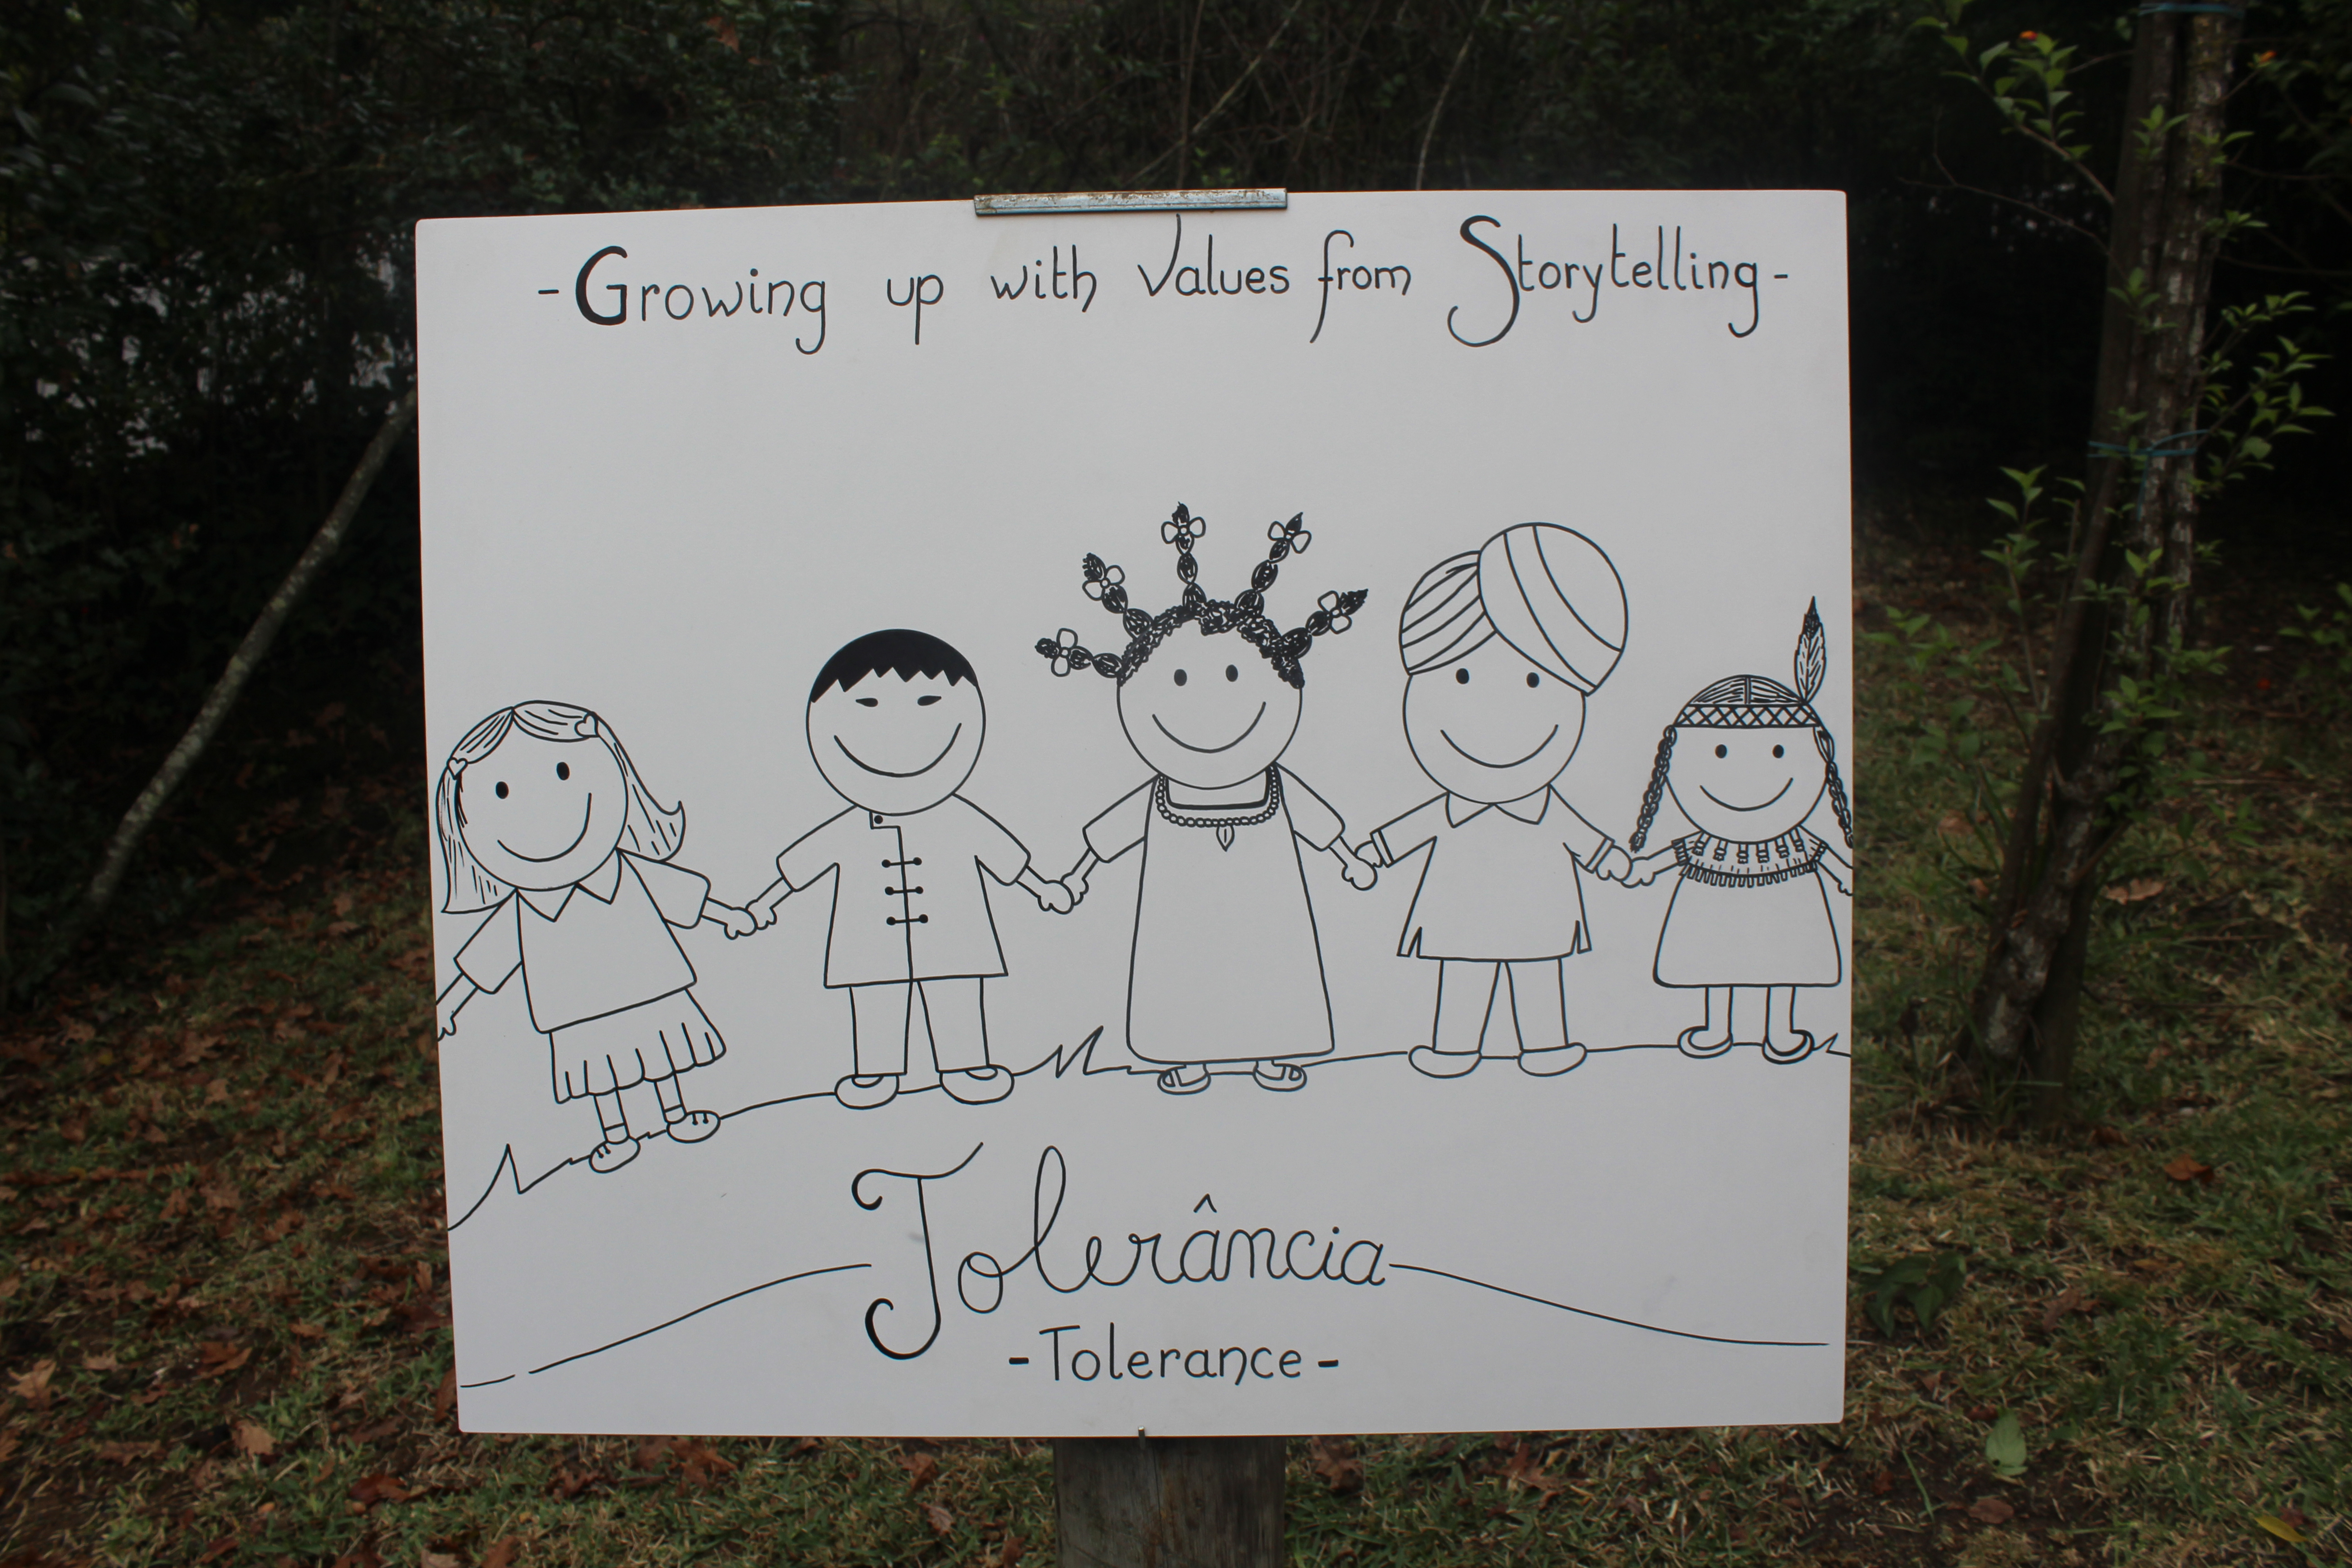 Growing up with Values from Storytelling - LTT Portugal